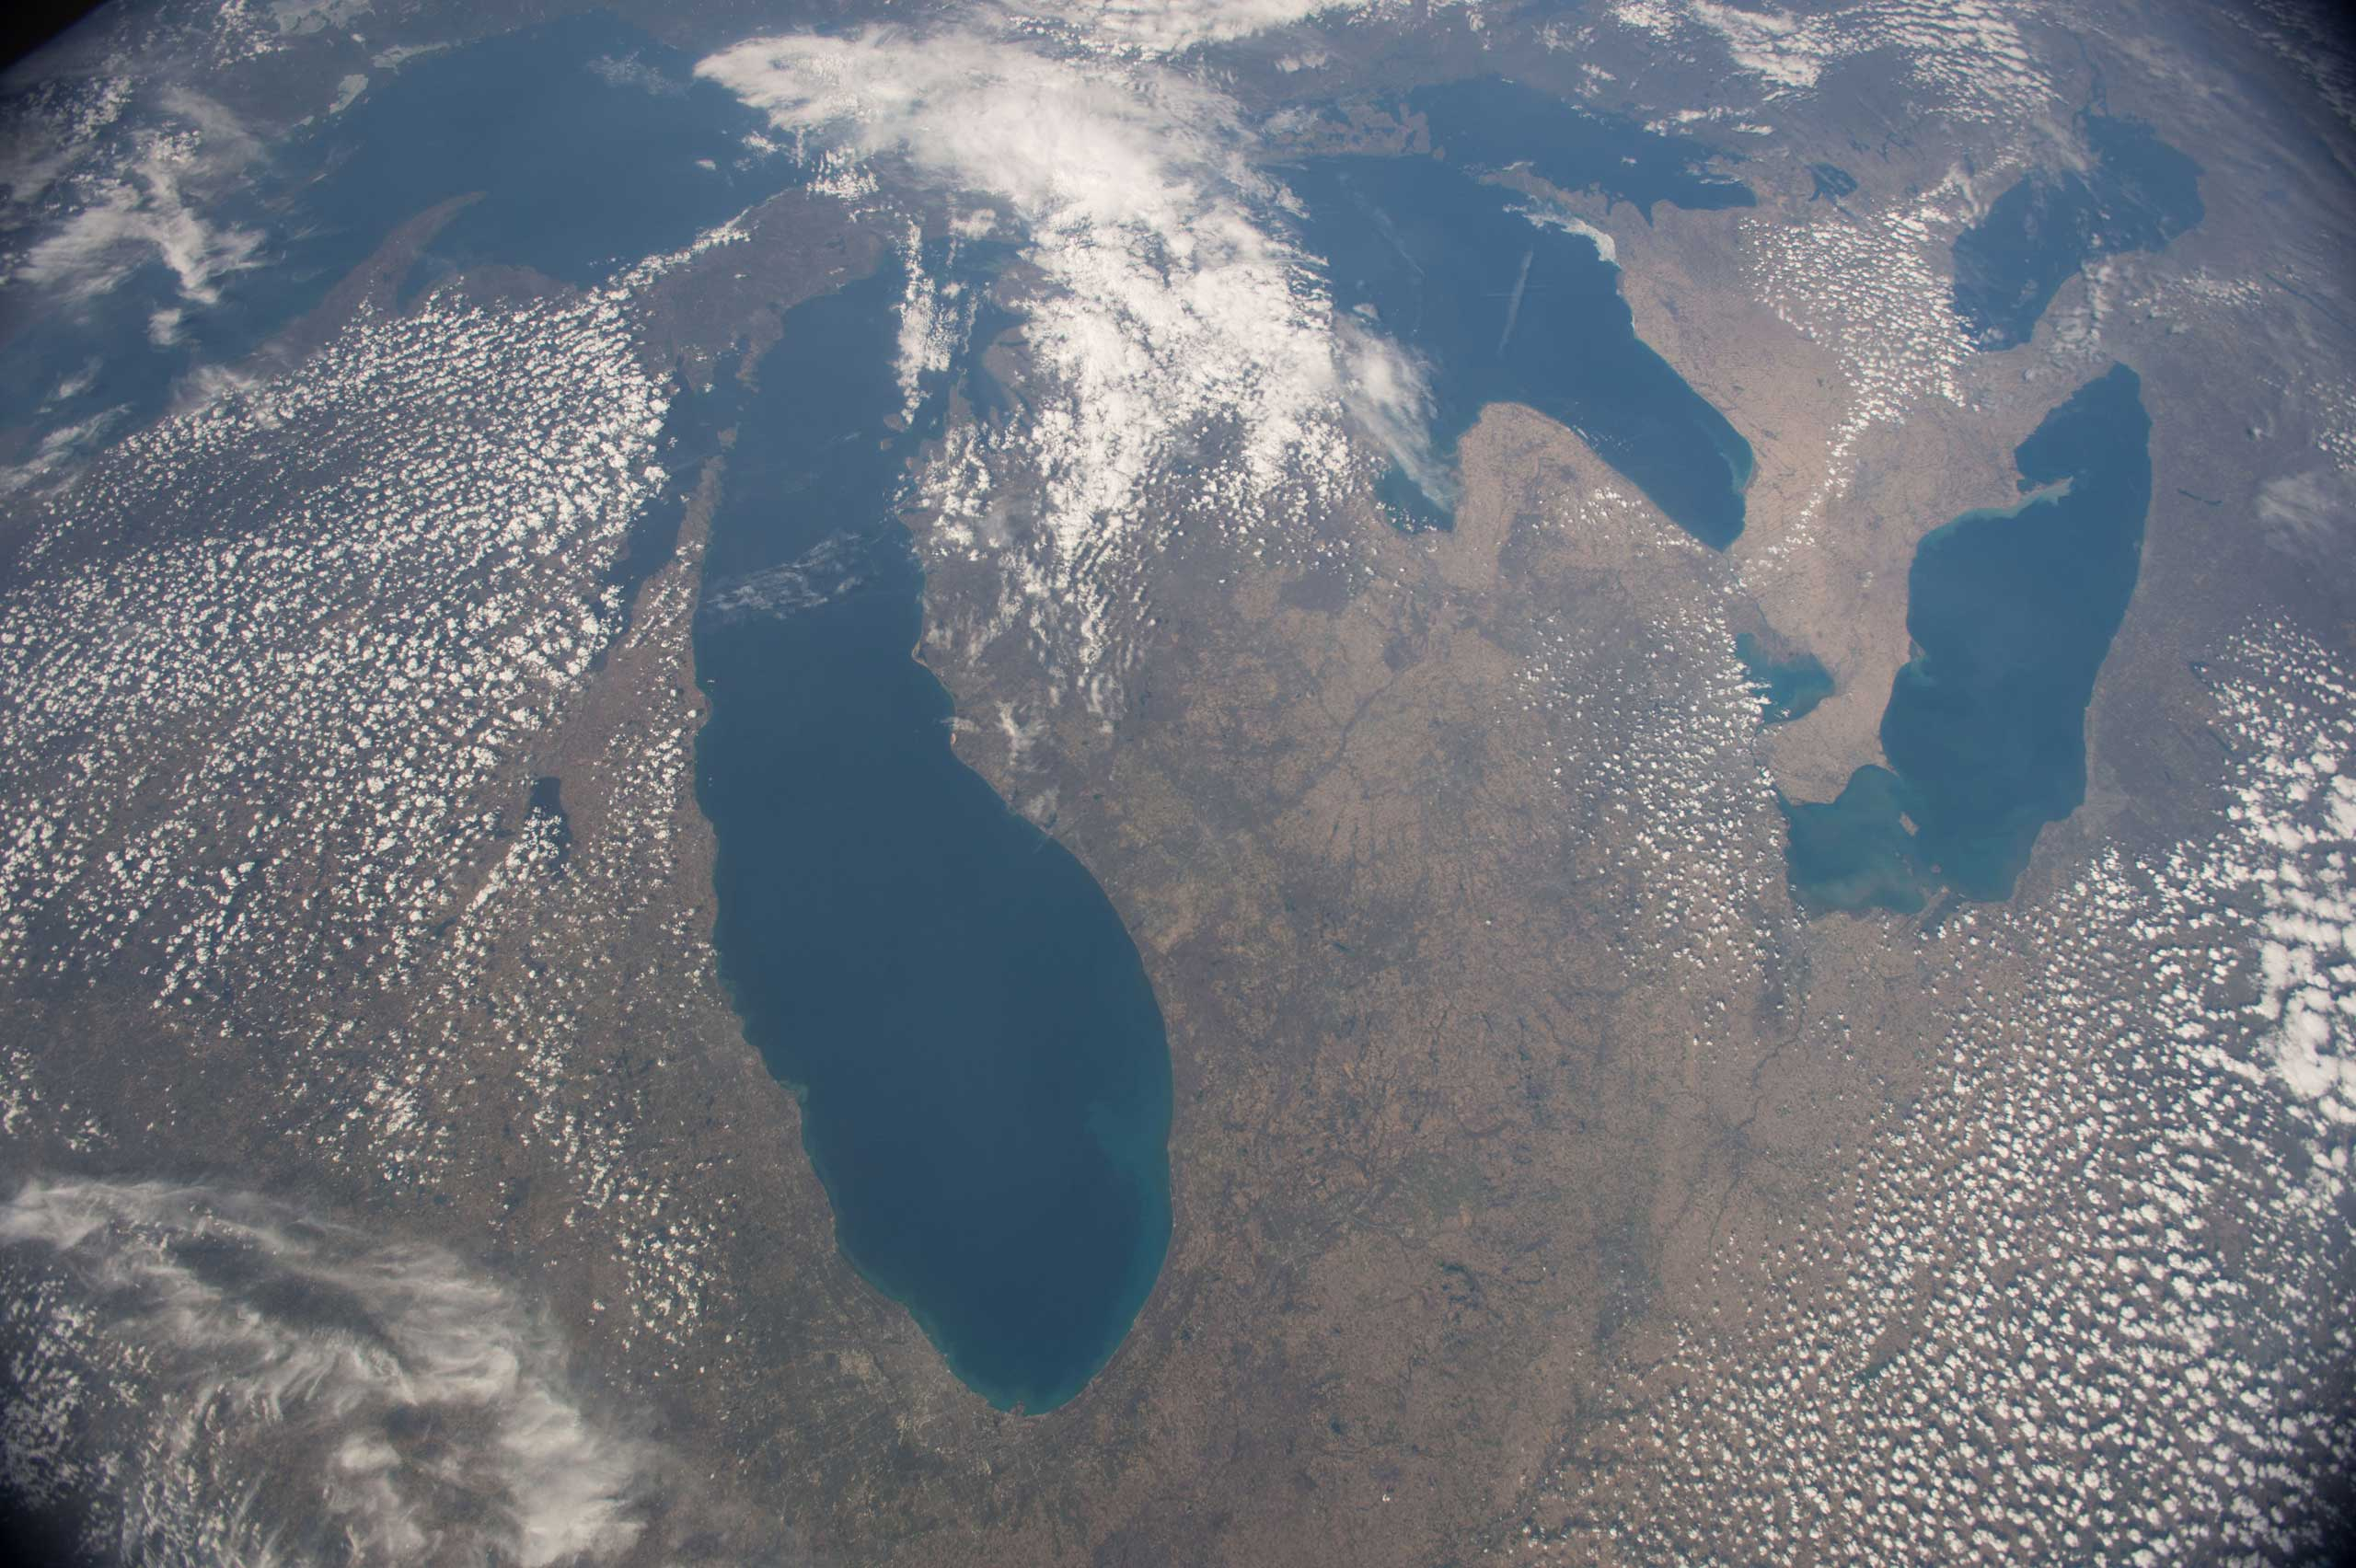 This image of the American upper Midwest and parts of Canada was captured by NASA astronaut Terry Virts on the International Space Station on May 2, 2015. Virts made this comment with the tweet:  It's great to see the #GreatLakes with no snow !